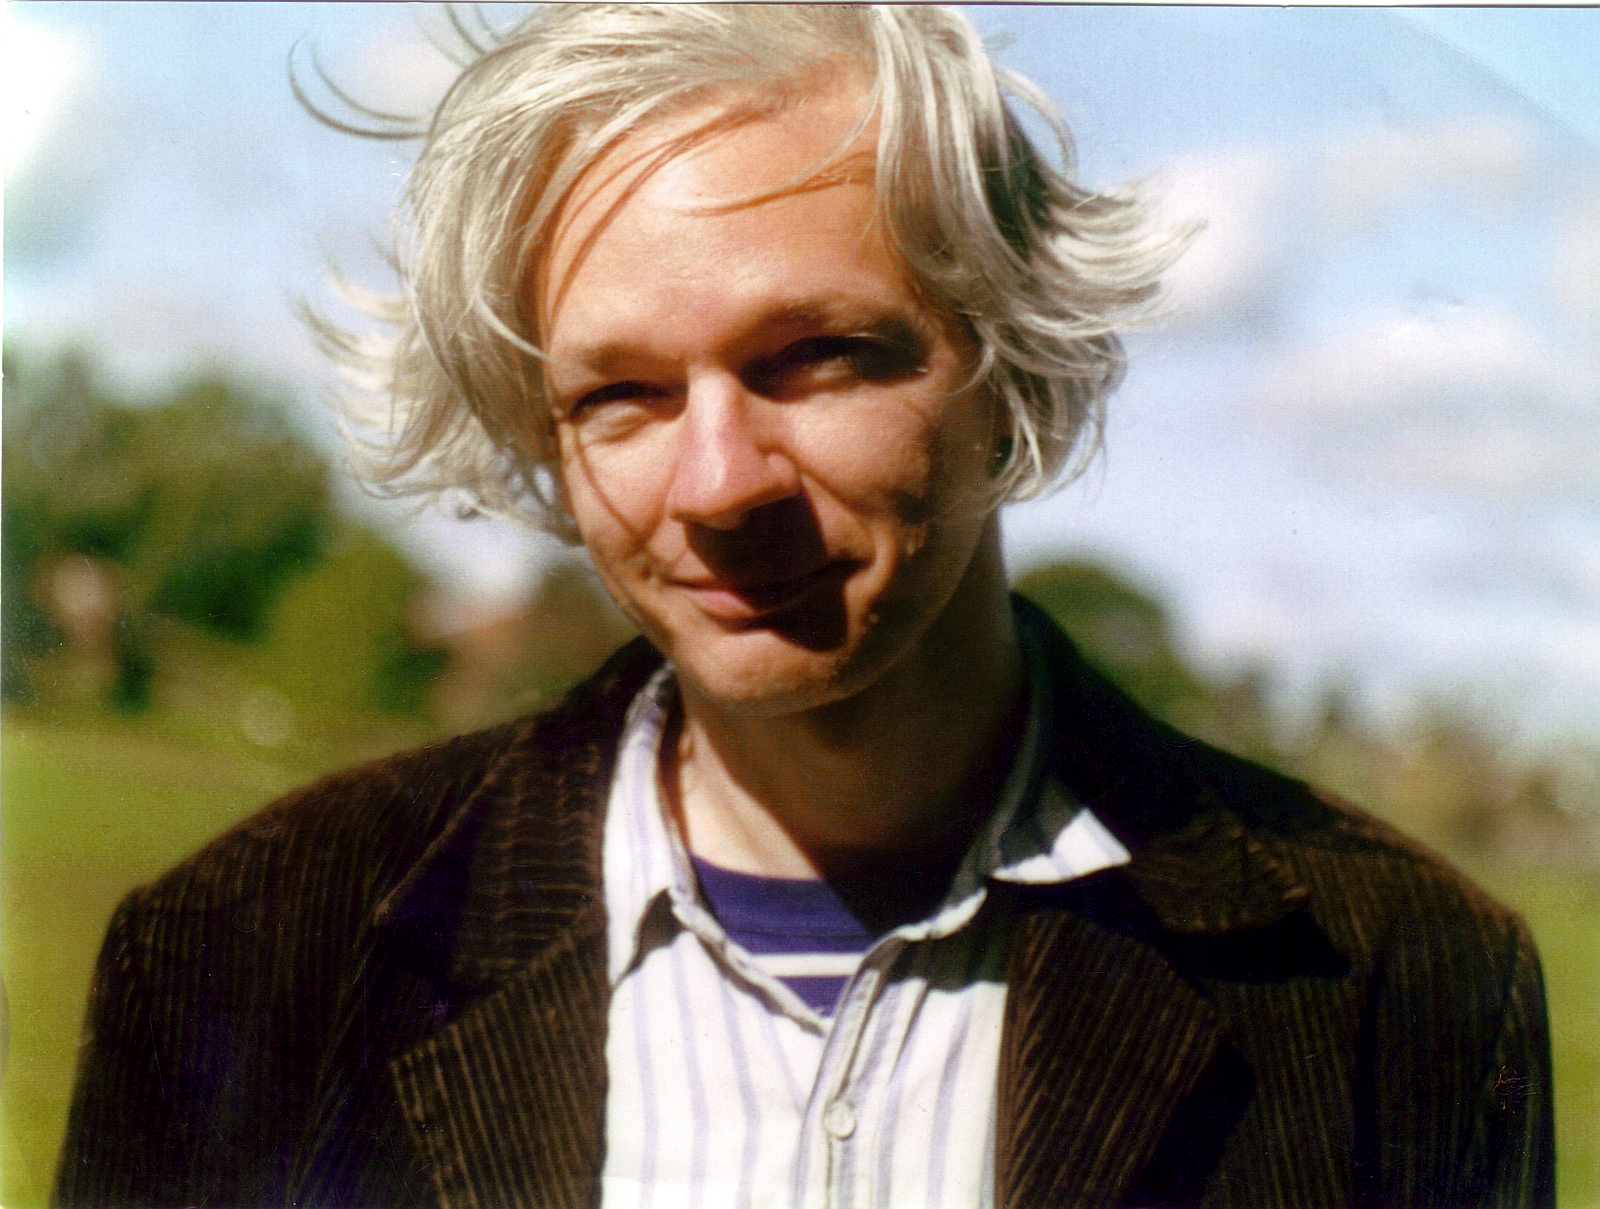 Julian Assange, in or before 2006. (Martina Haris via Wikimedia Commons)